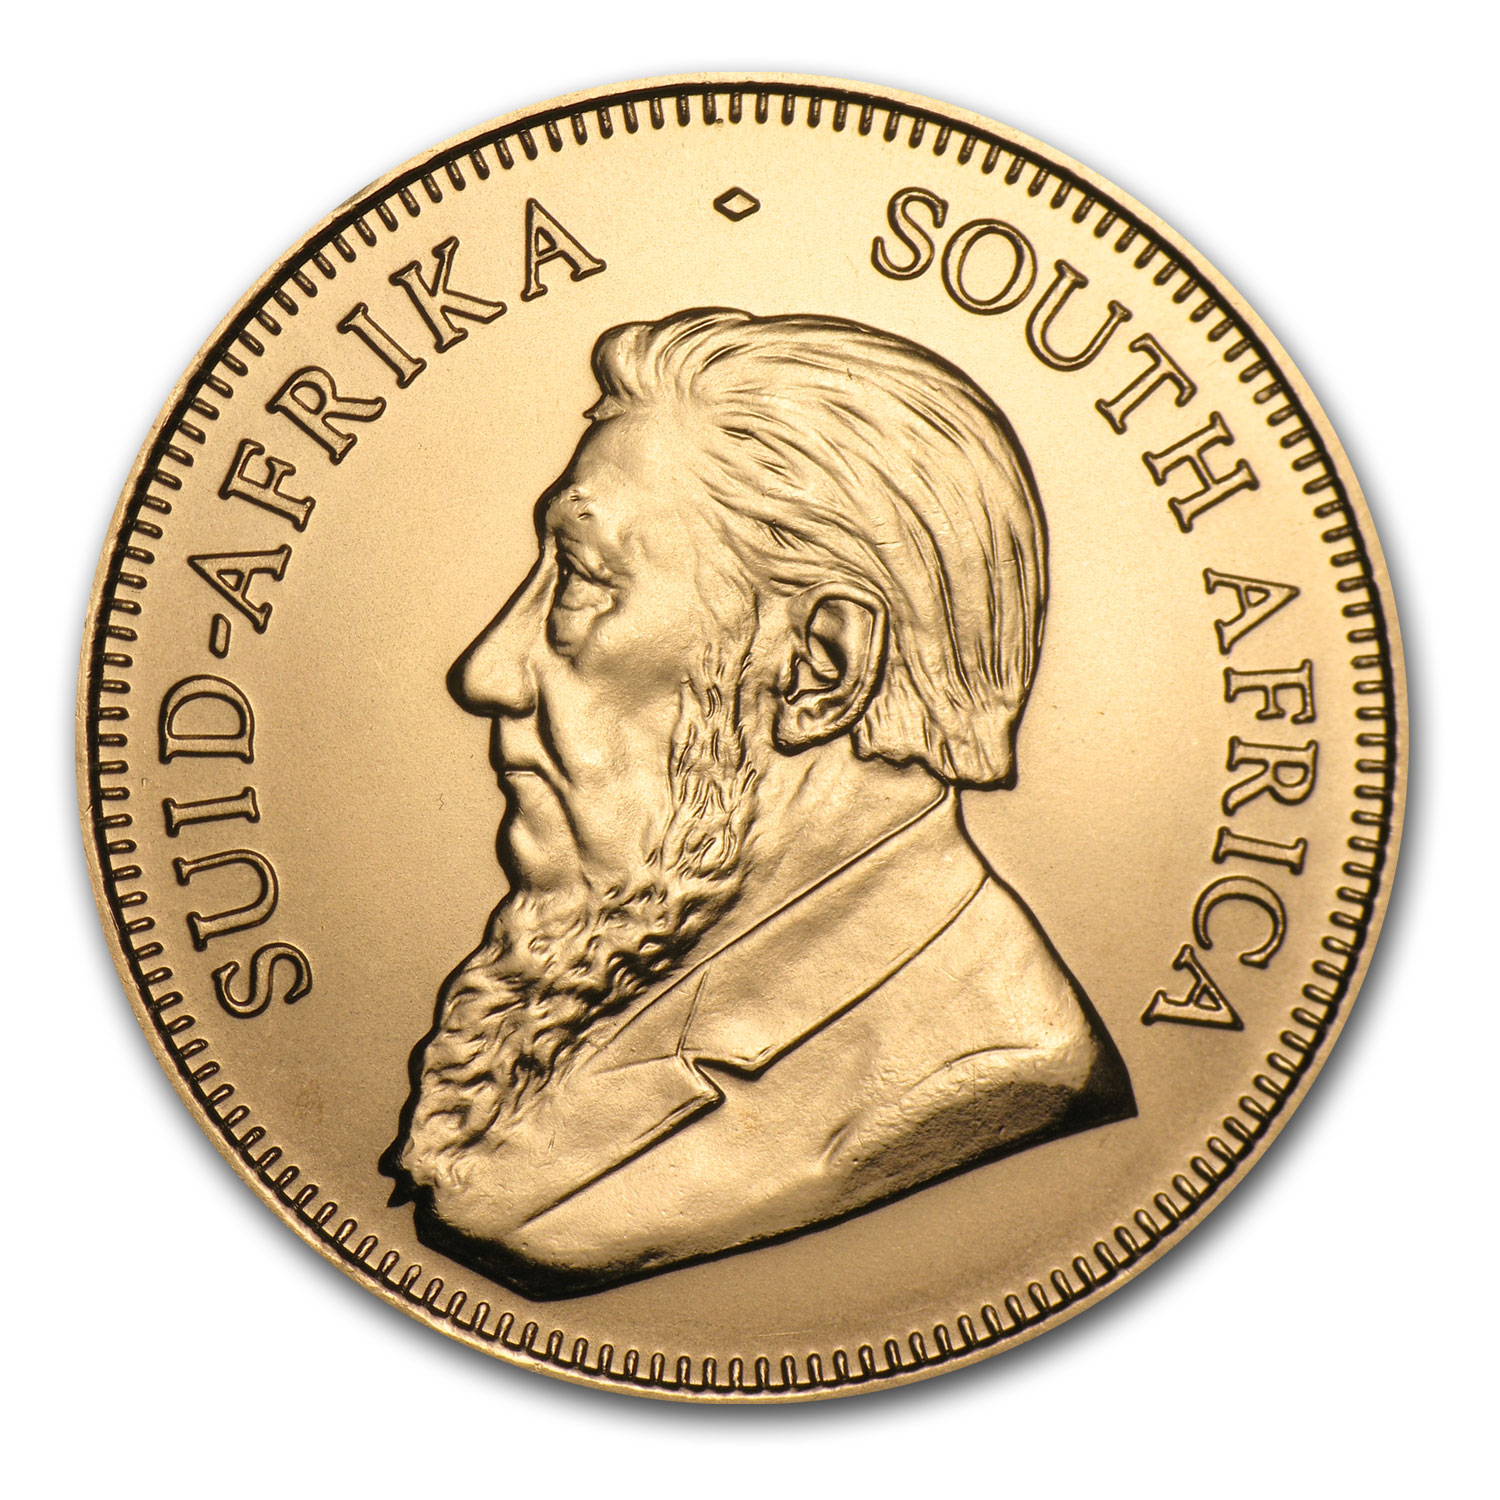 2014 South Africa 1 oz Gold Krugerrand